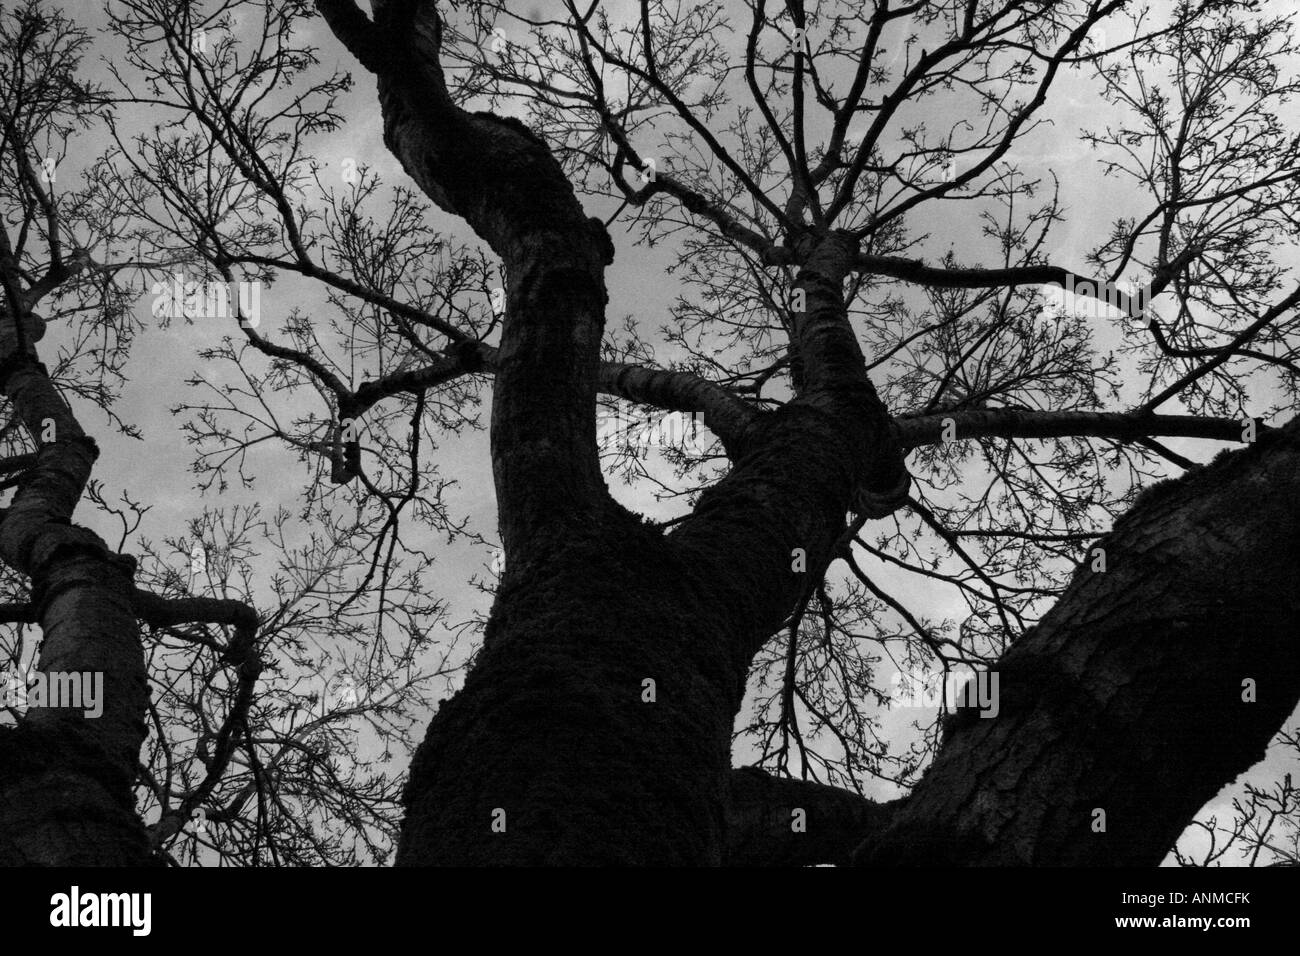 A silhouette of a tree showing branching and delineation of limbs and smaller branches - Stock Image